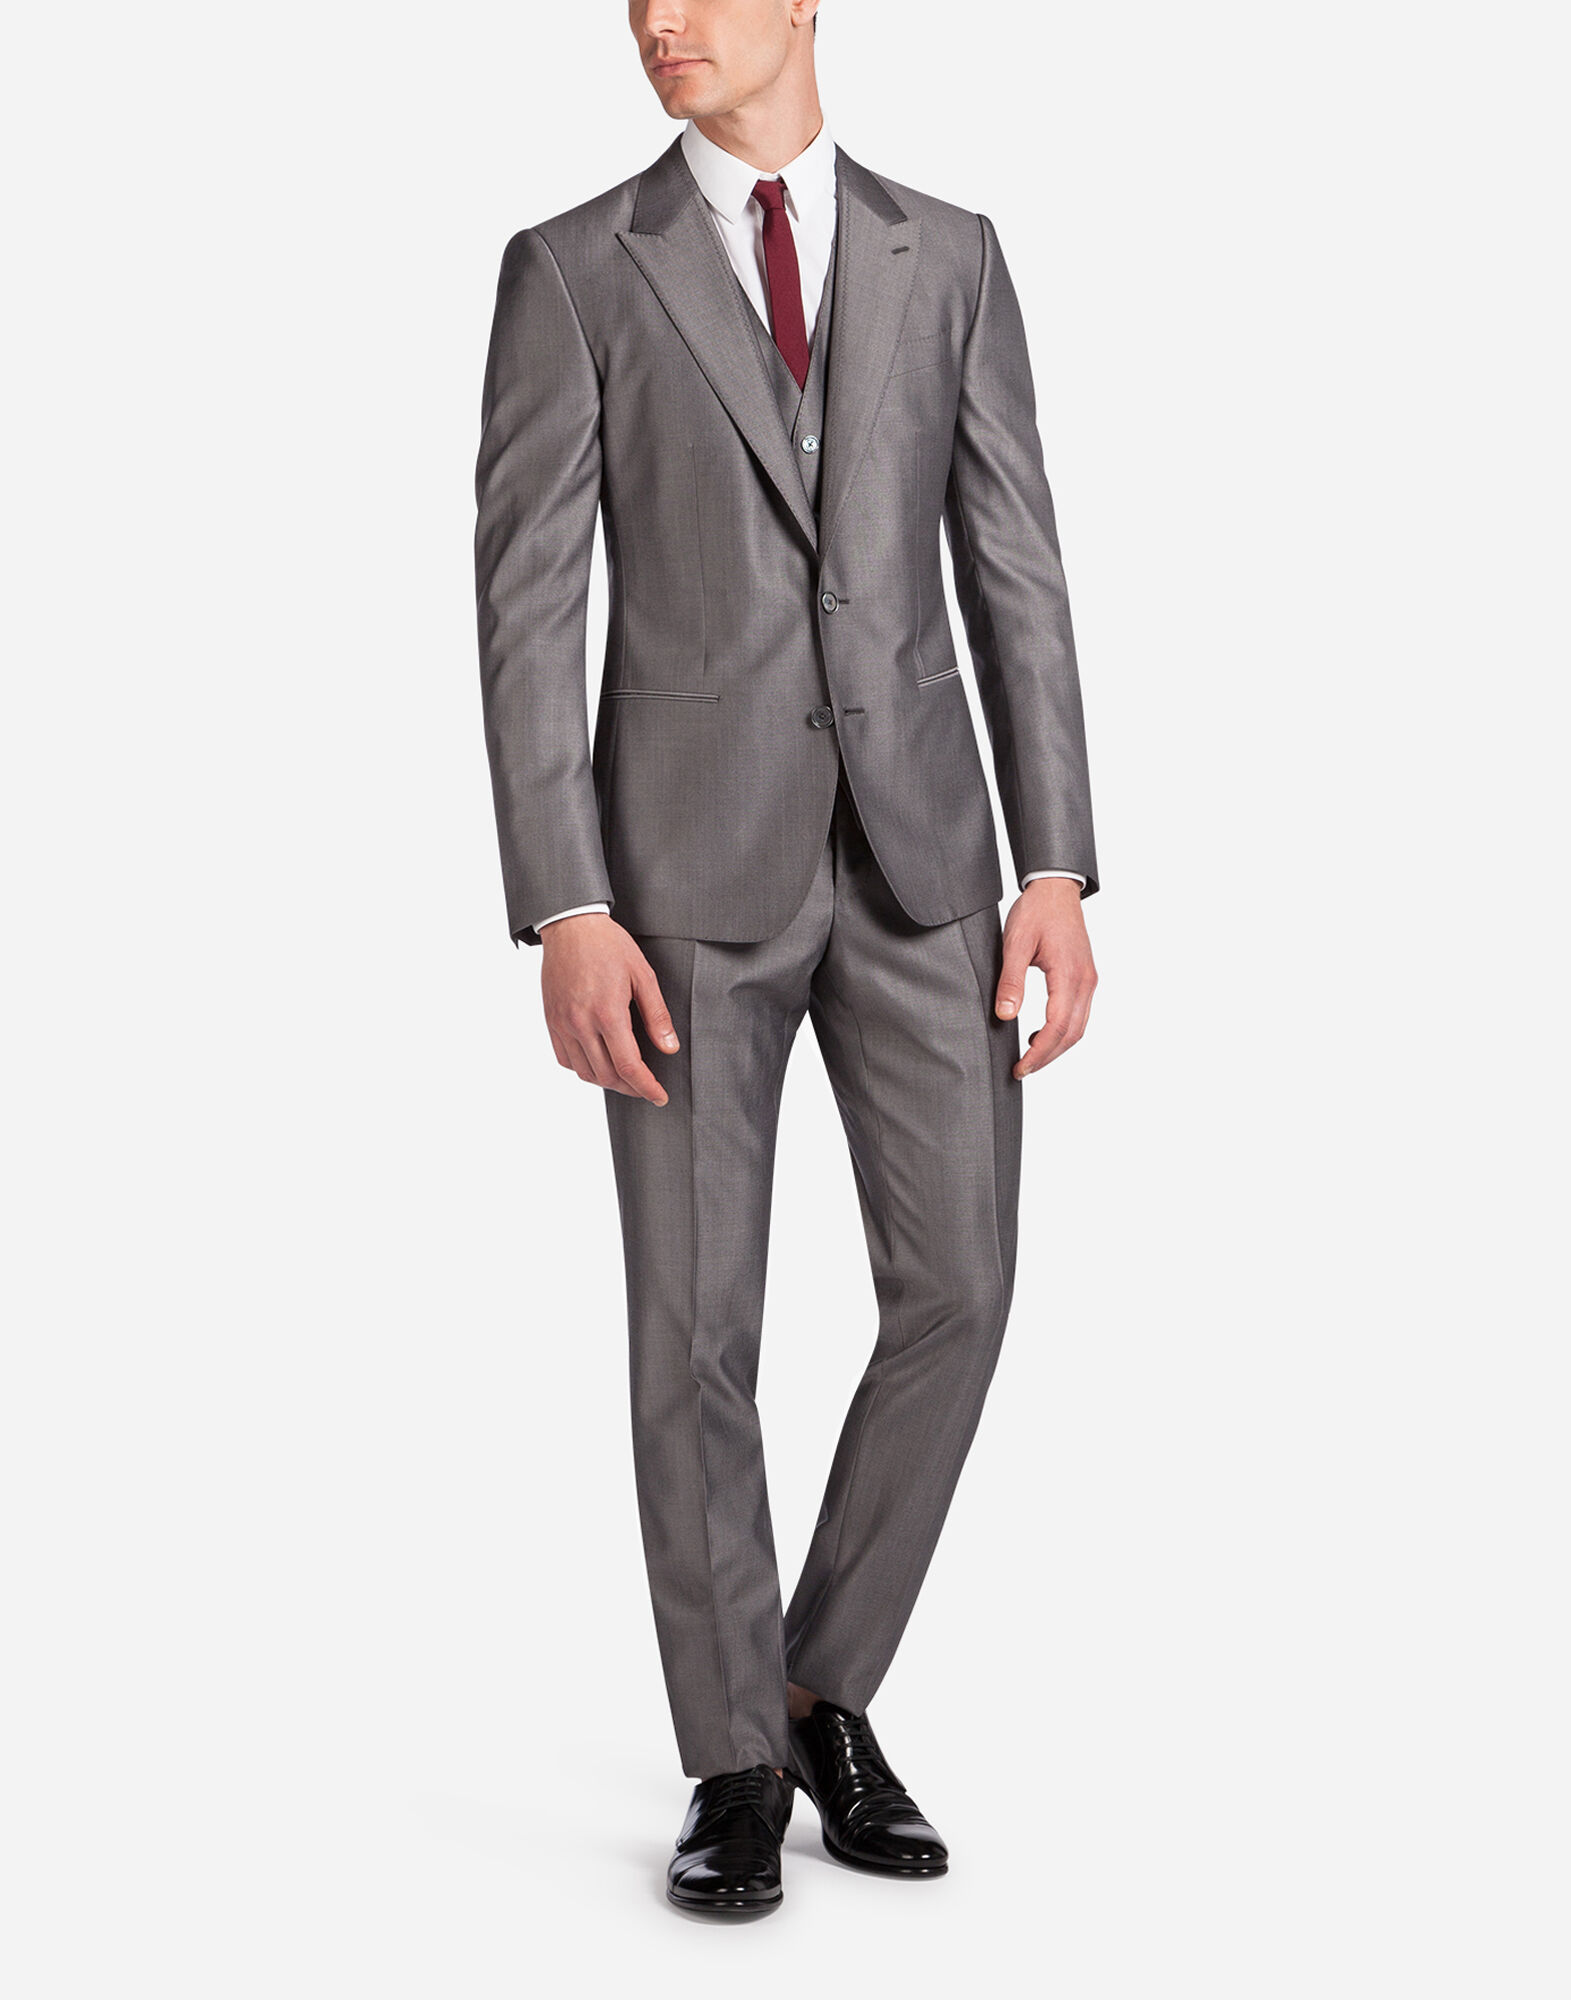 THREE PIECE SINGLE-BREASTED WEDDING SUIT IN WOOL